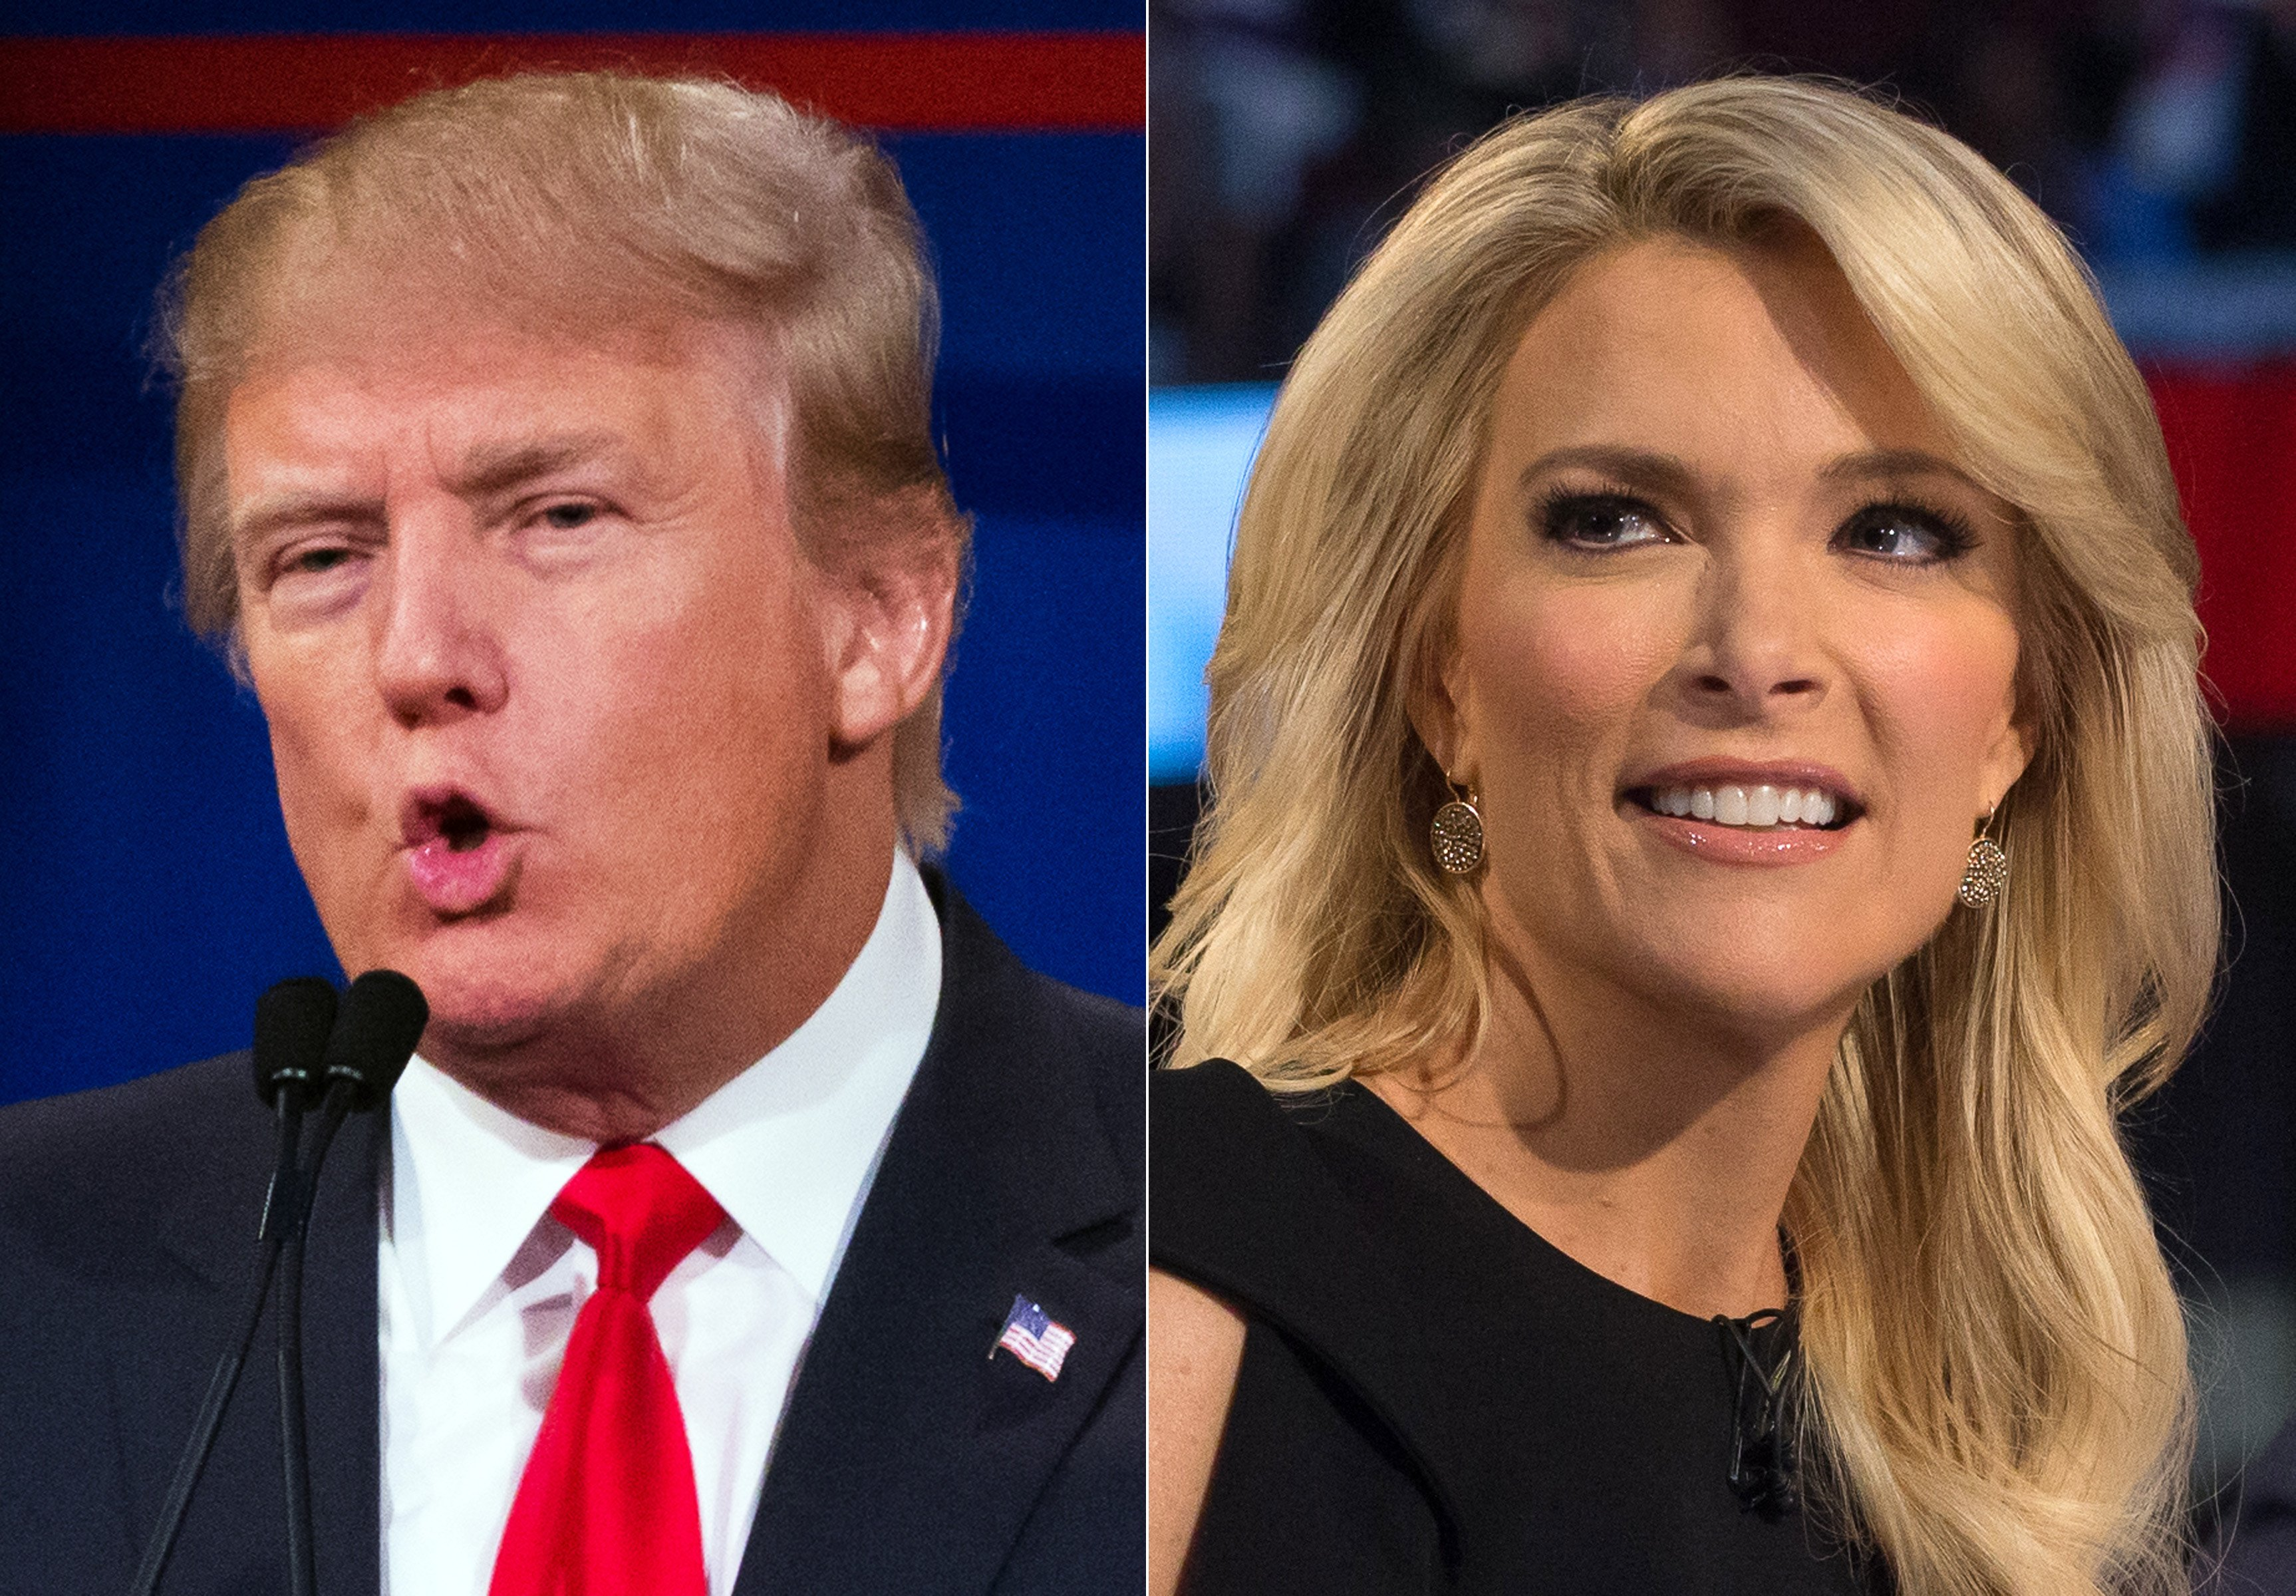 Donald Trump, left, and Megyn Kelly during the first Republican debate at the Quicken Loans Arena in Cleveland Ohio, Aug. 6, 2015.